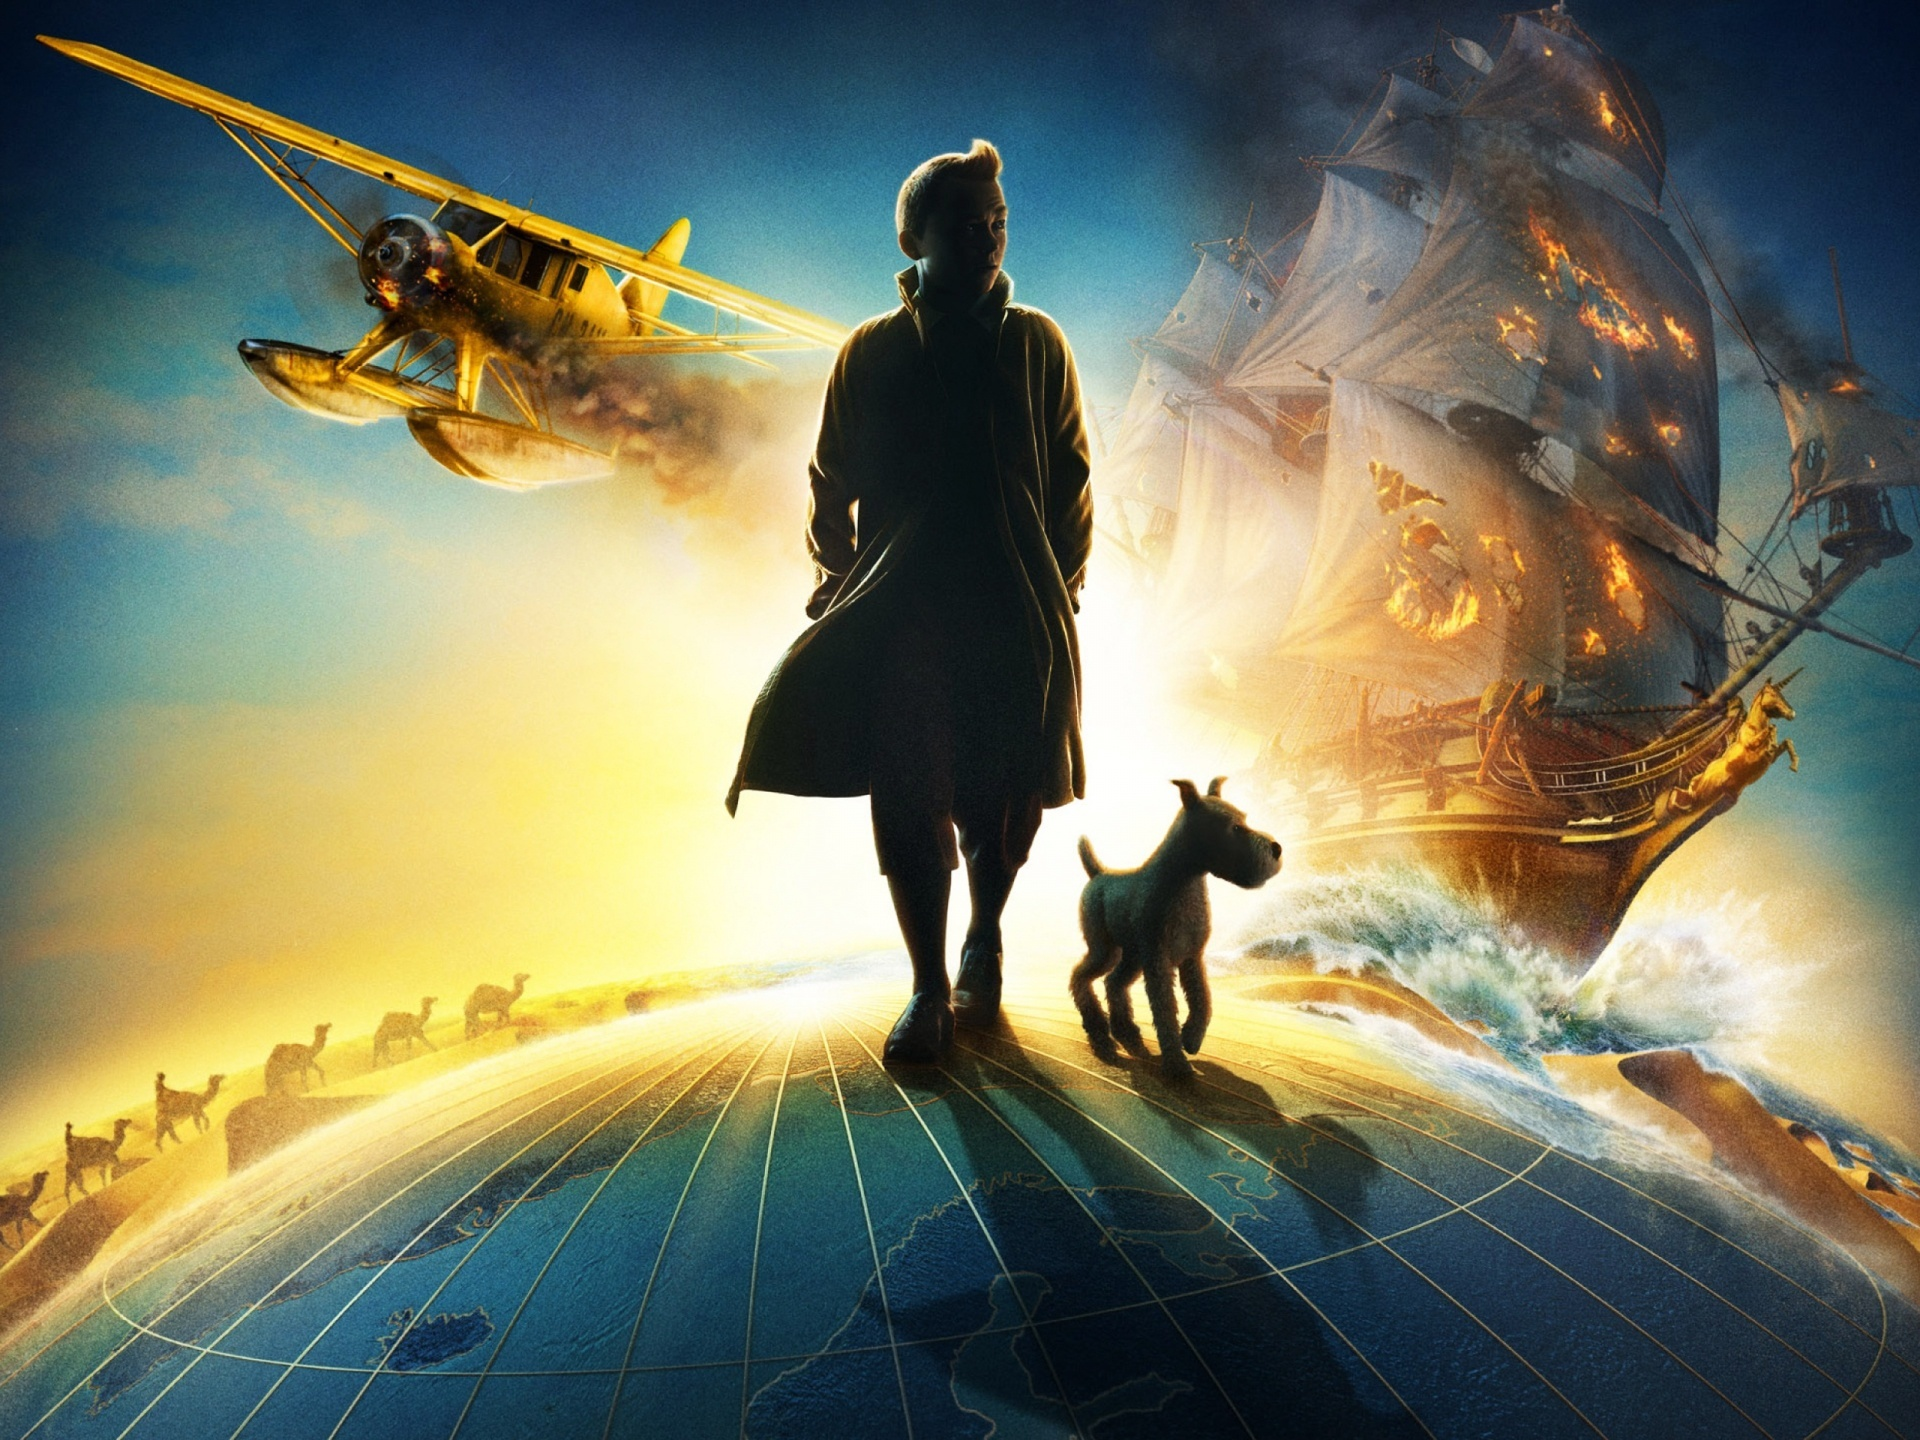 14744 download wallpaper Cartoon, Adventures Of Tintin screensavers and pictures for free